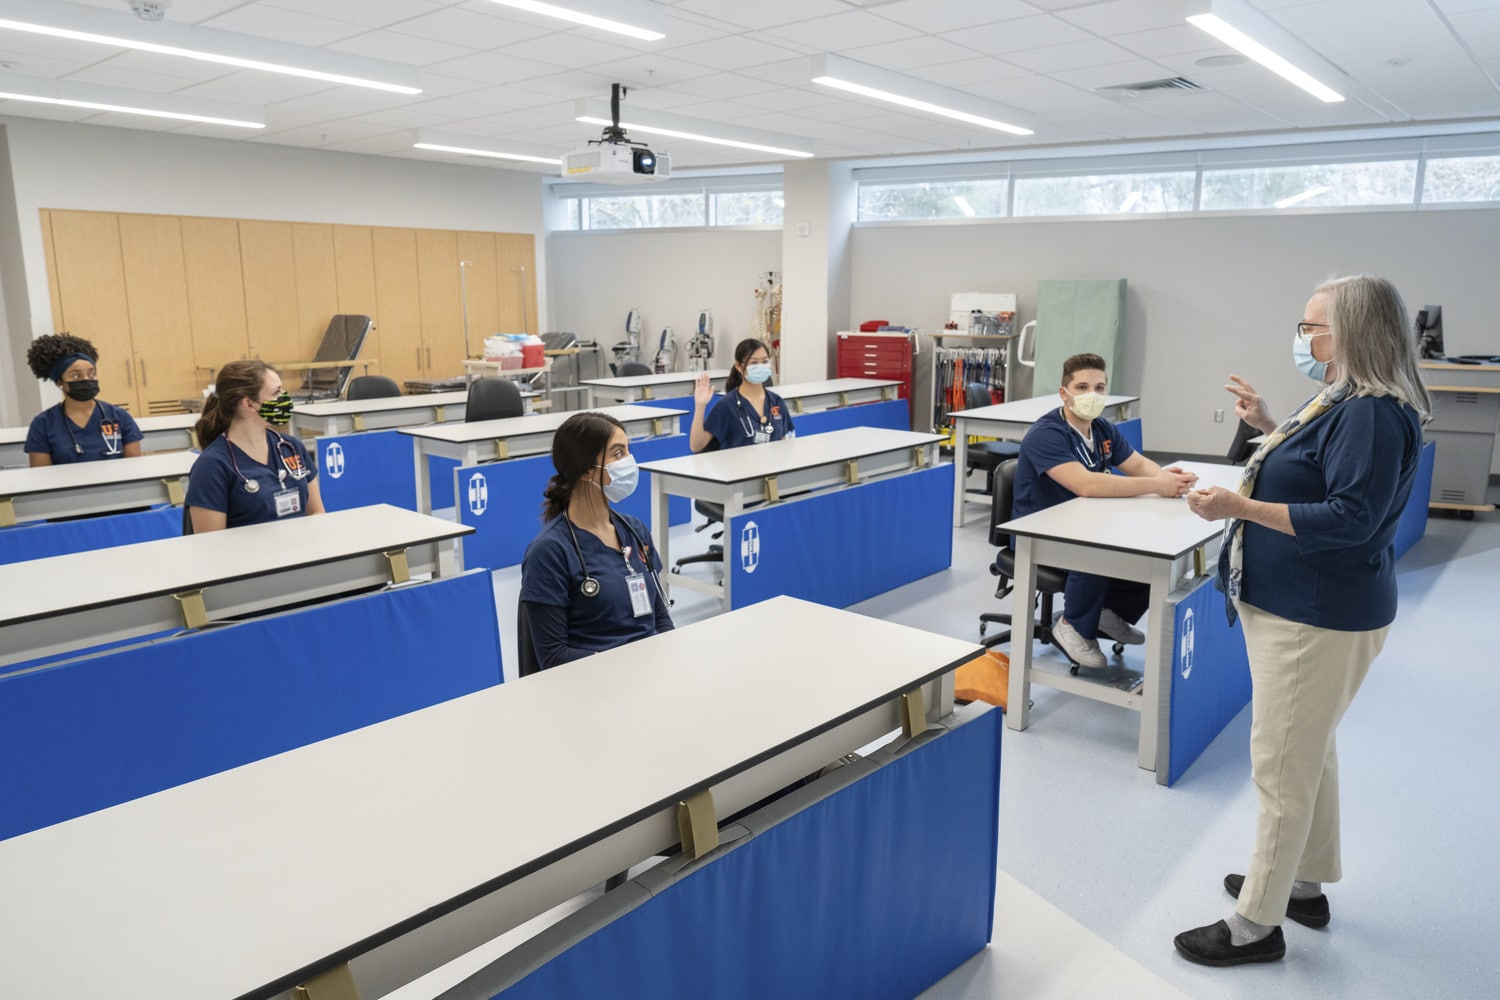 Innovation and Learning Lab